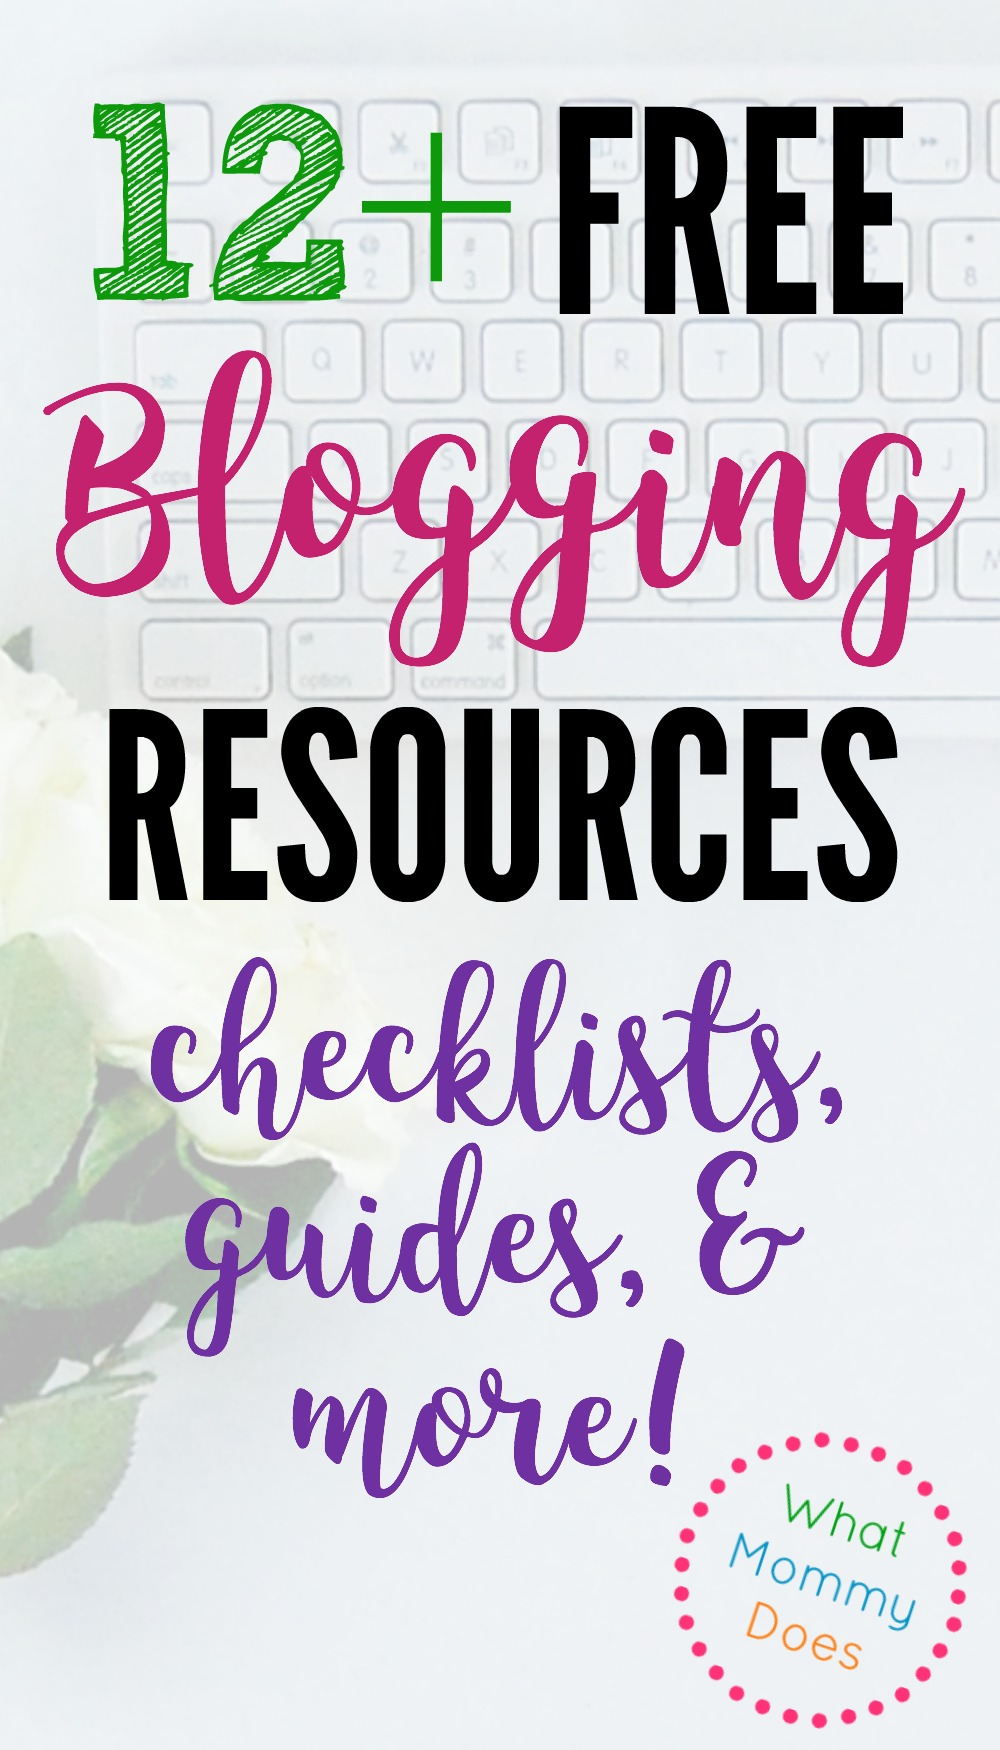 These are the blogging guides you MUST download right now! If you need tips on growing your blog traffic, ideas to increase blogging income, this is a great resource list for you! You can get lots of ideas for free. Just follow each link to redeeem.   12+ Free Blogging Resouces